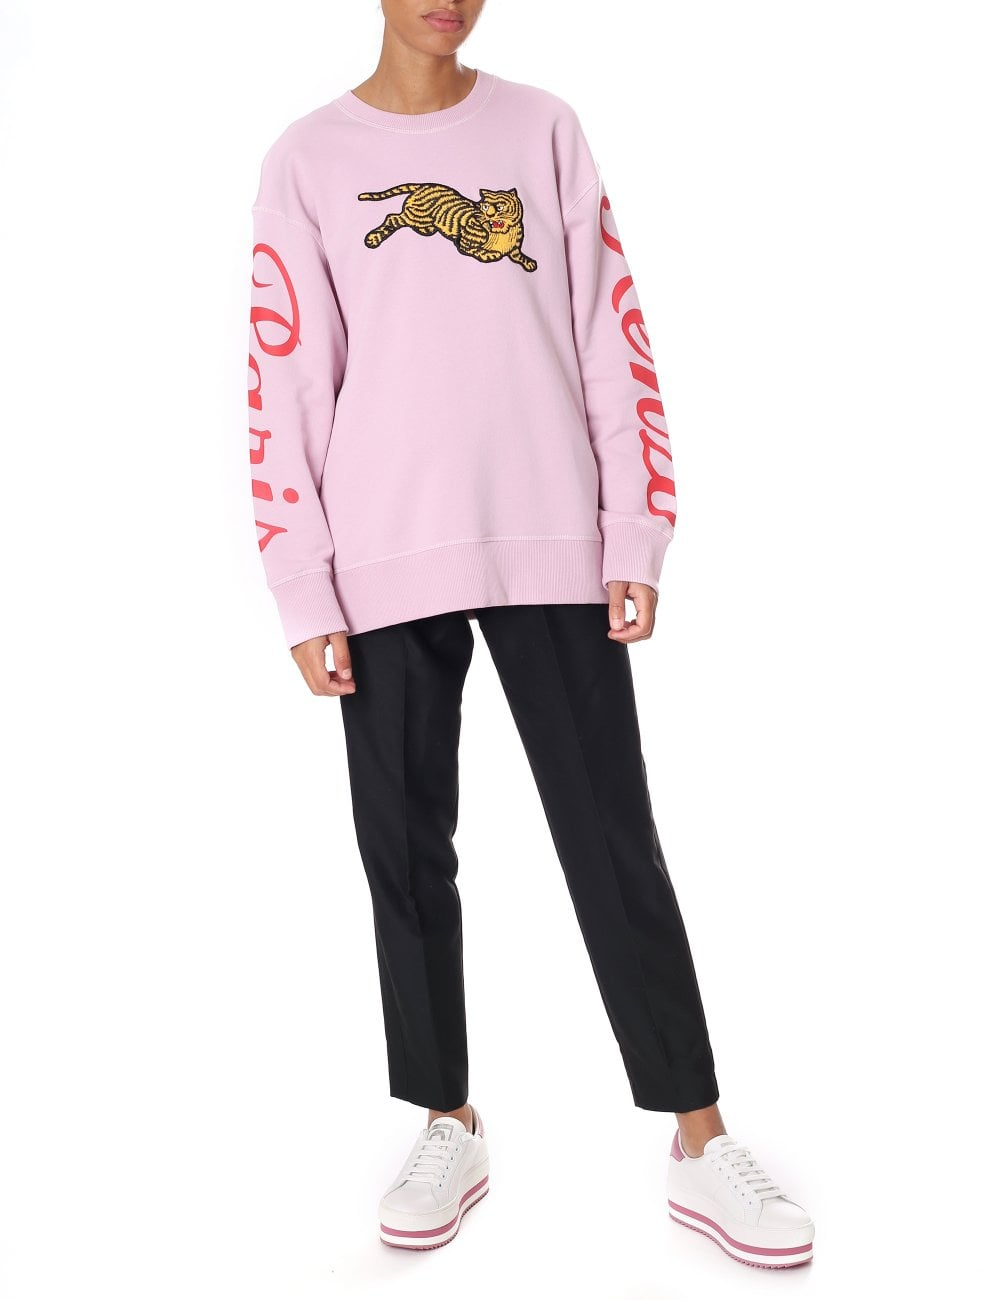 71634ba3f2d7 Kenzo Women's Jumping Tiger Fleece Sweatshirt